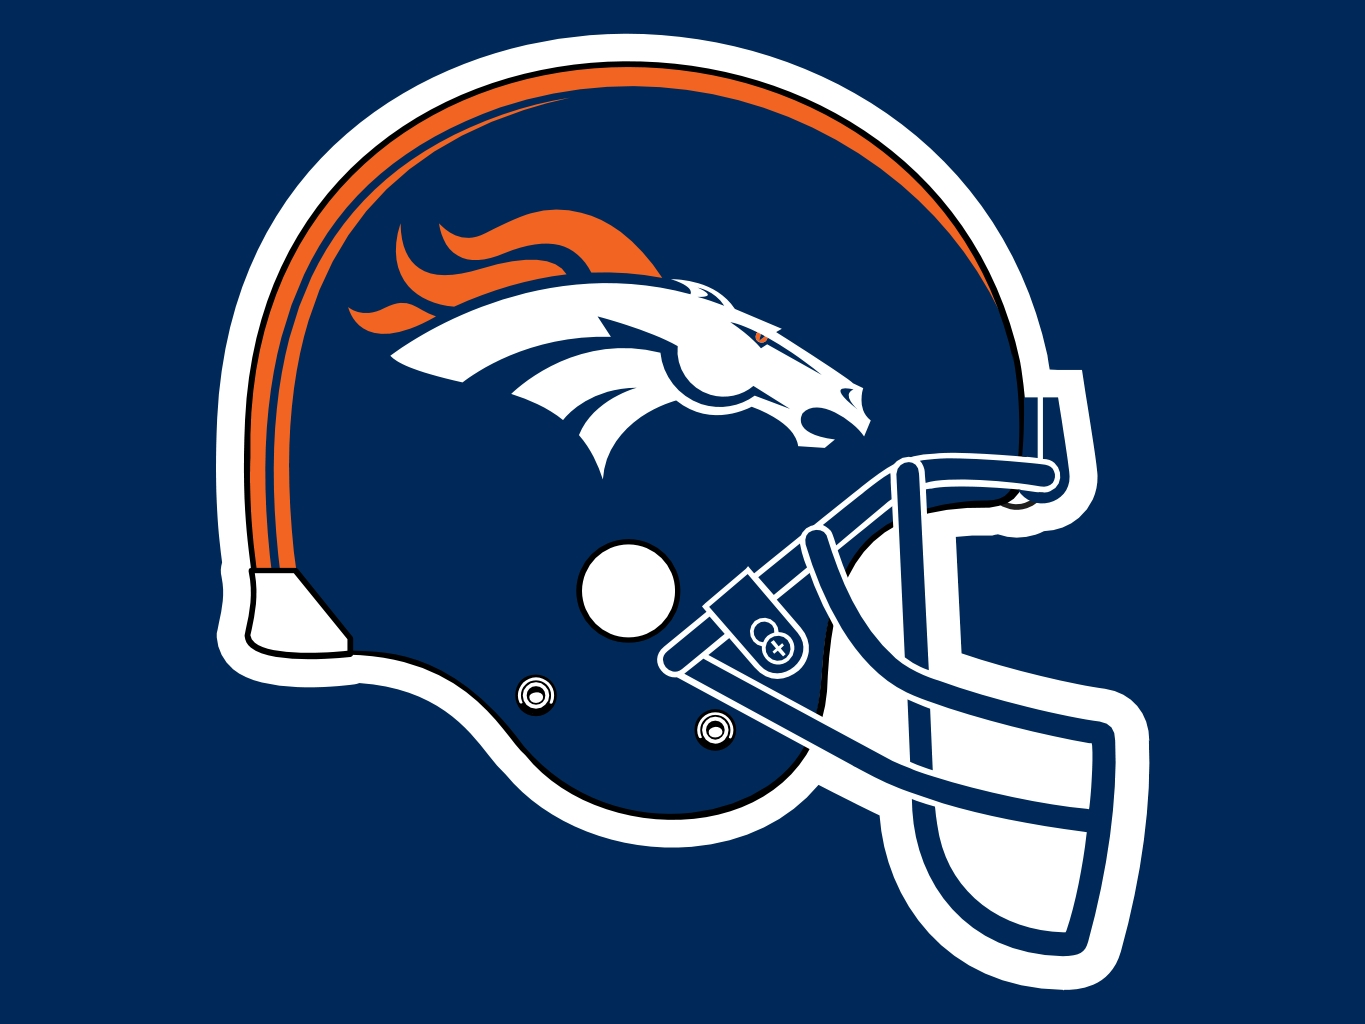 Denver broncos logo helmet wallpaper 8 live hd jpg